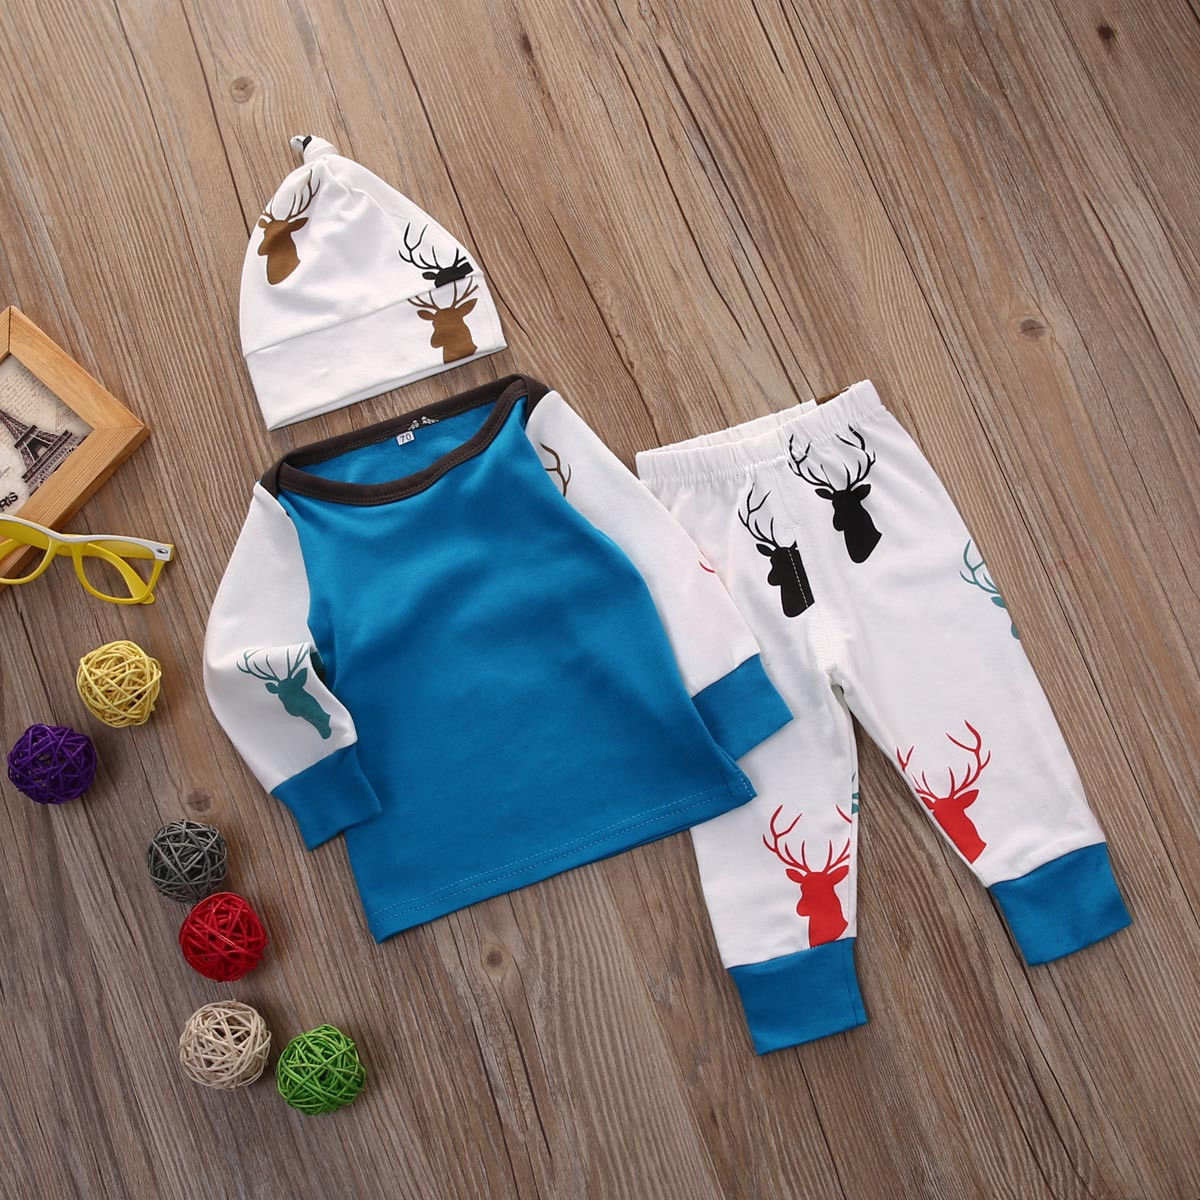 3Pcs Newborn Infant Baby Boys Girls Clothing Set 3pcs Top Deer Pants Leggings Hat Cotton Clothes Outfit Set Baby Boy Girl 2017 hot newborn infant baby boy girl clothes love heart bodysuit romper pant hat 3pcs outfit autumn suit clothing set